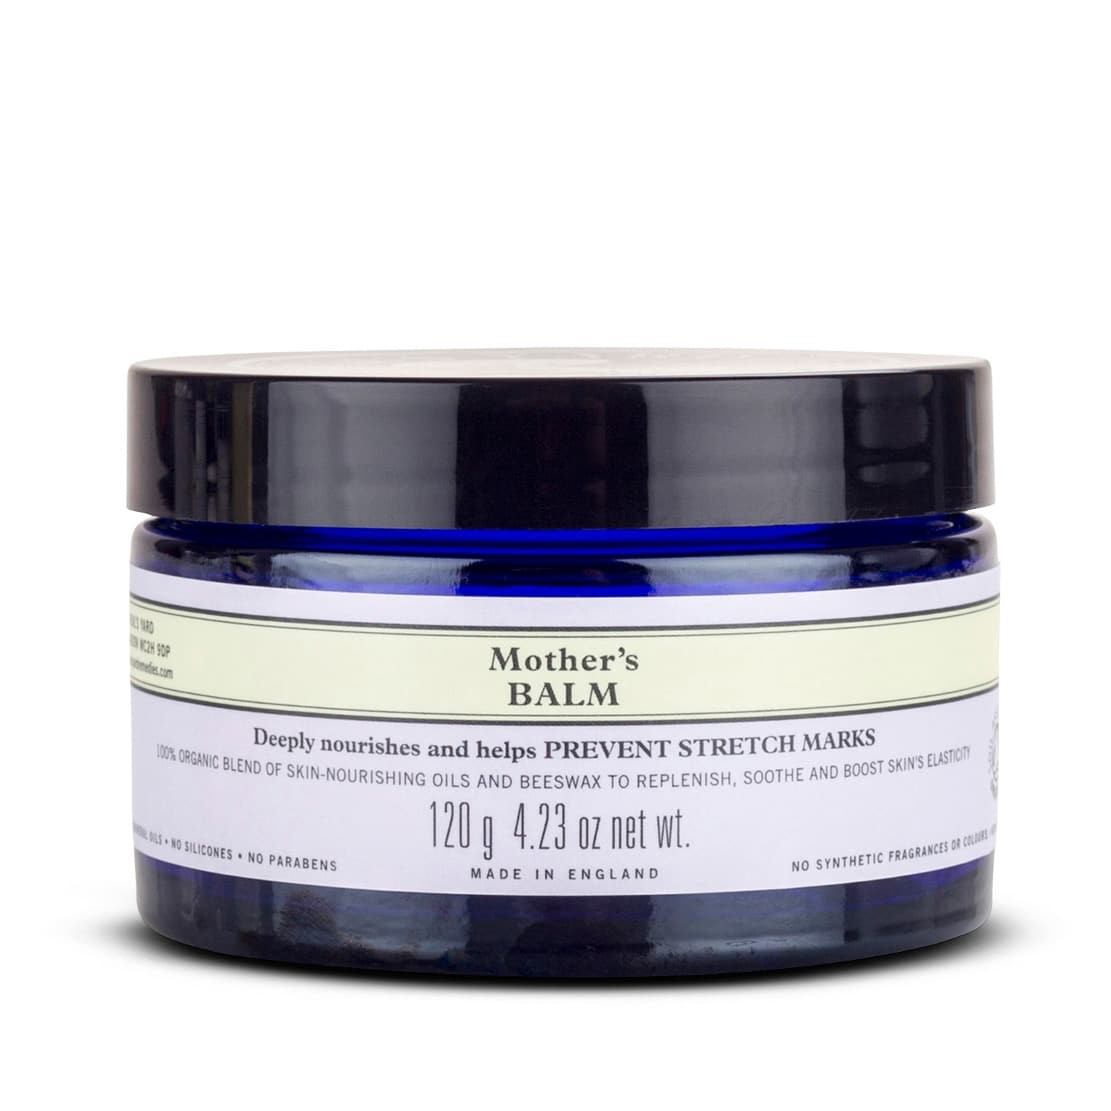 Neal's Yard Remedies Caring For Mum Mother's Balm